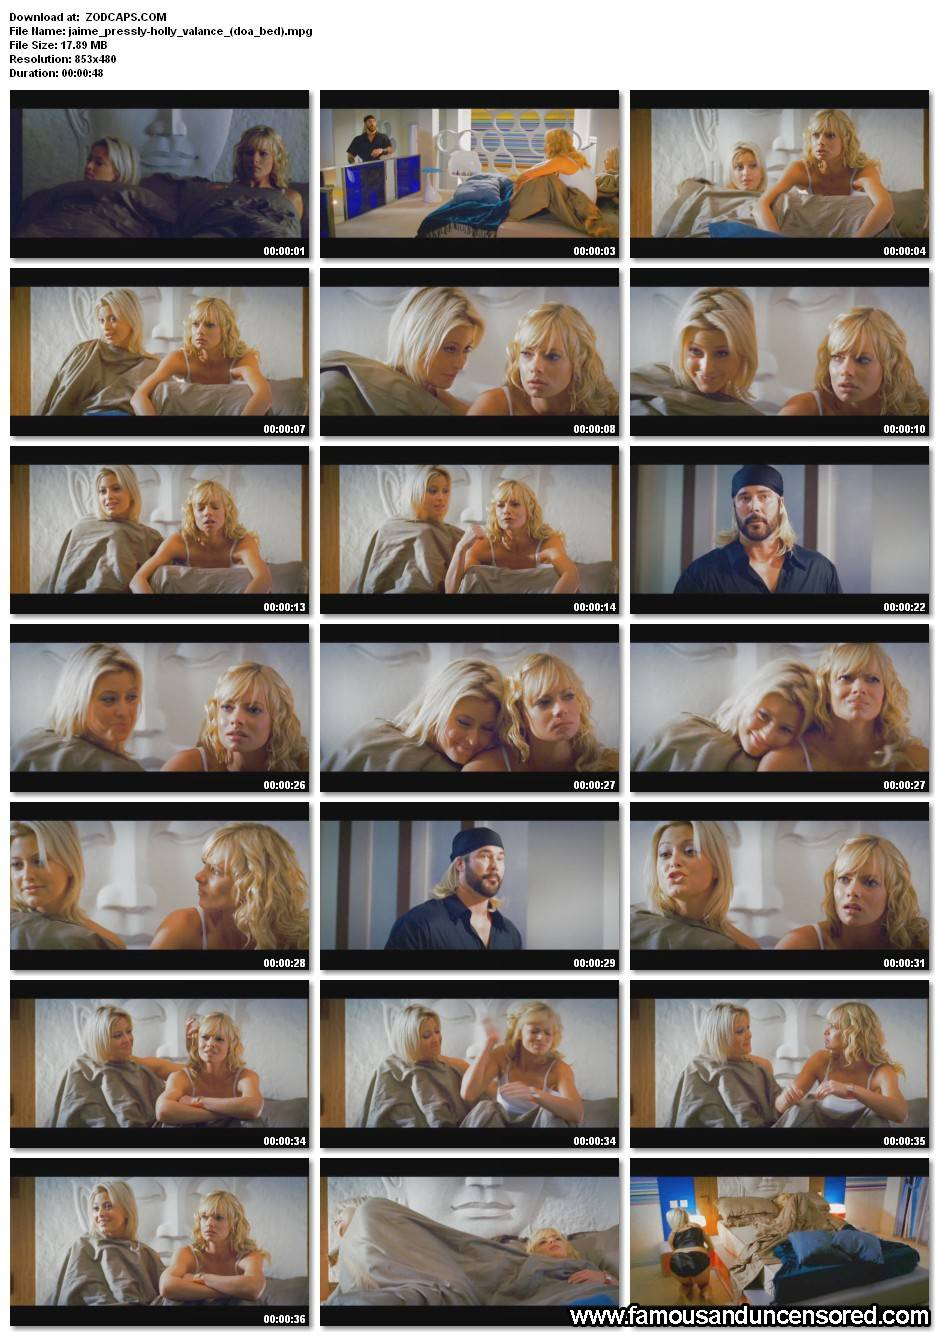 Jaime Pressly Nude Sexy Scene in DOA Celebrity Photos and Videos: www.famousanduncensored.com/nitrovideo.com/galleries2/15184-jaime...